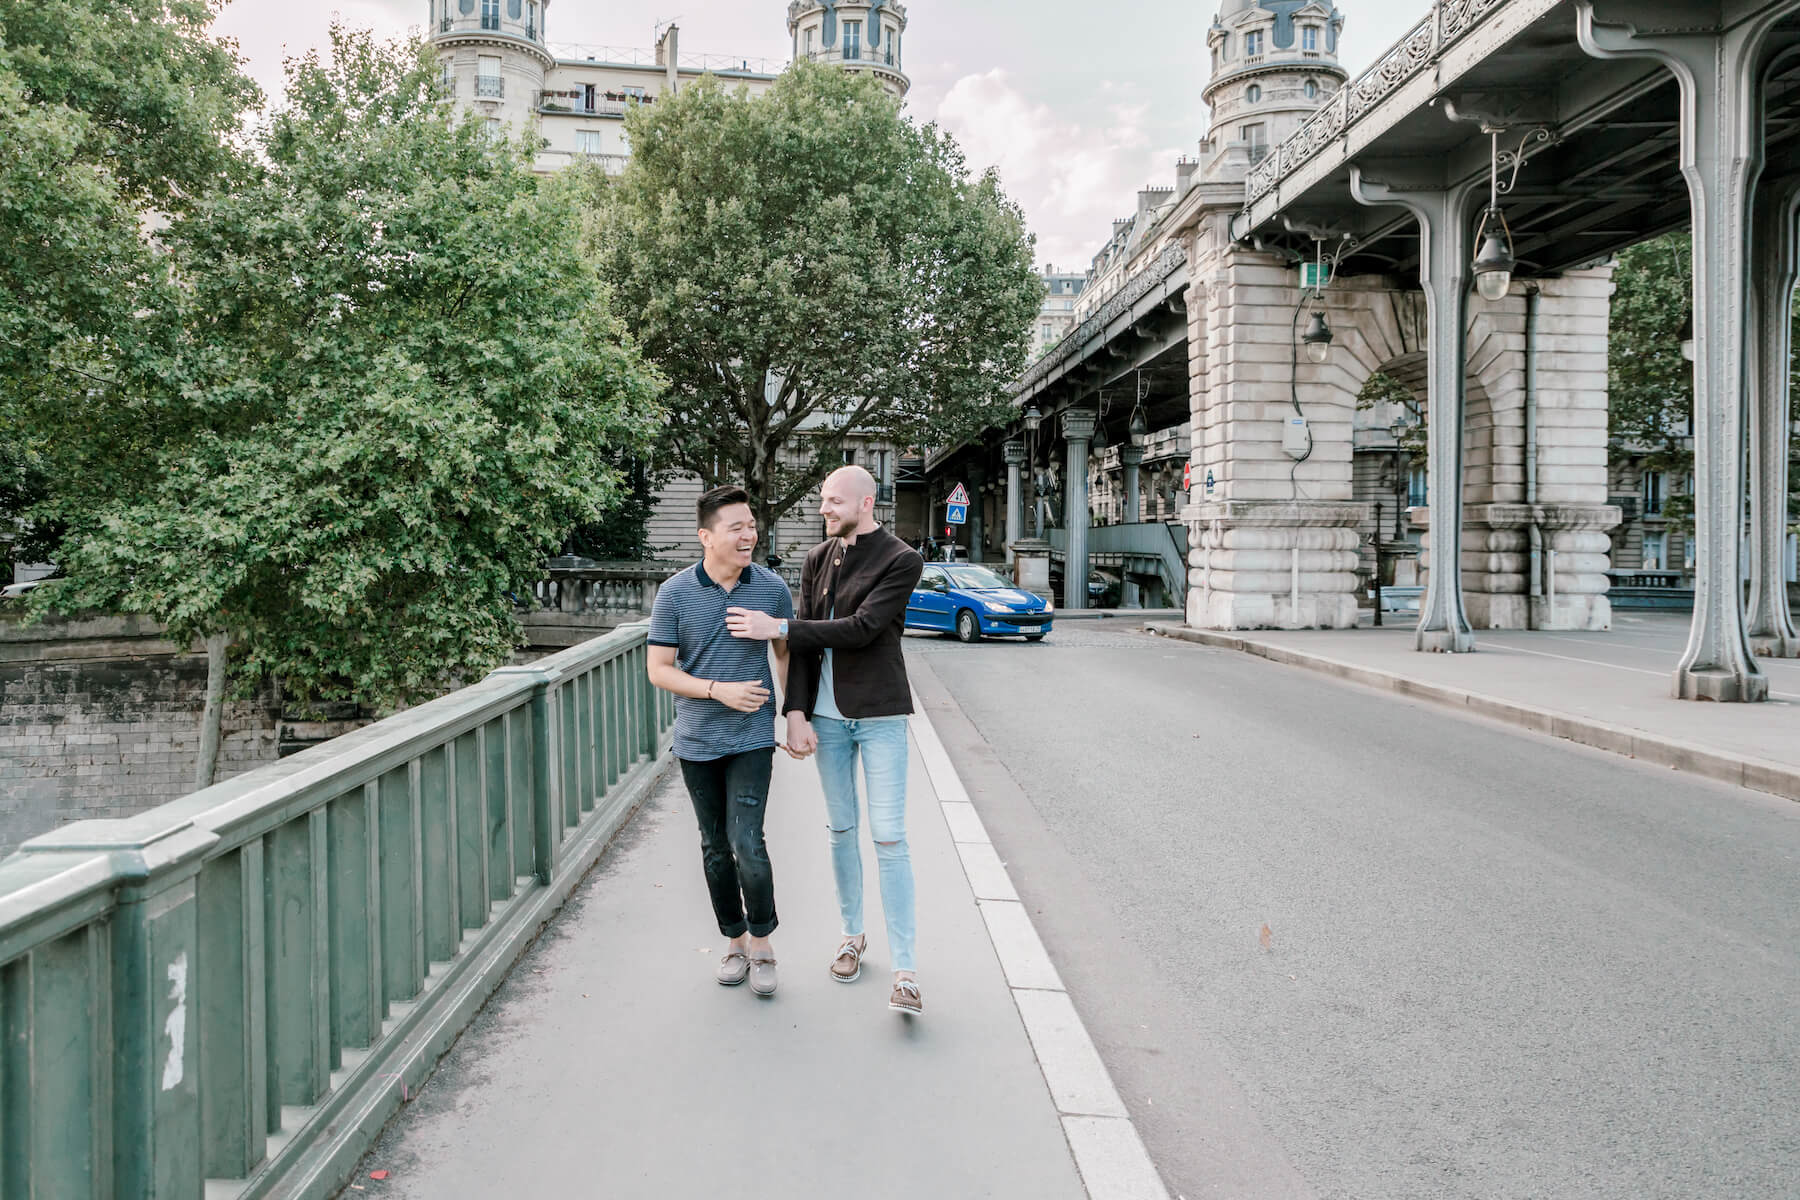 a couple walking near the Eiffel tower in Paris, France